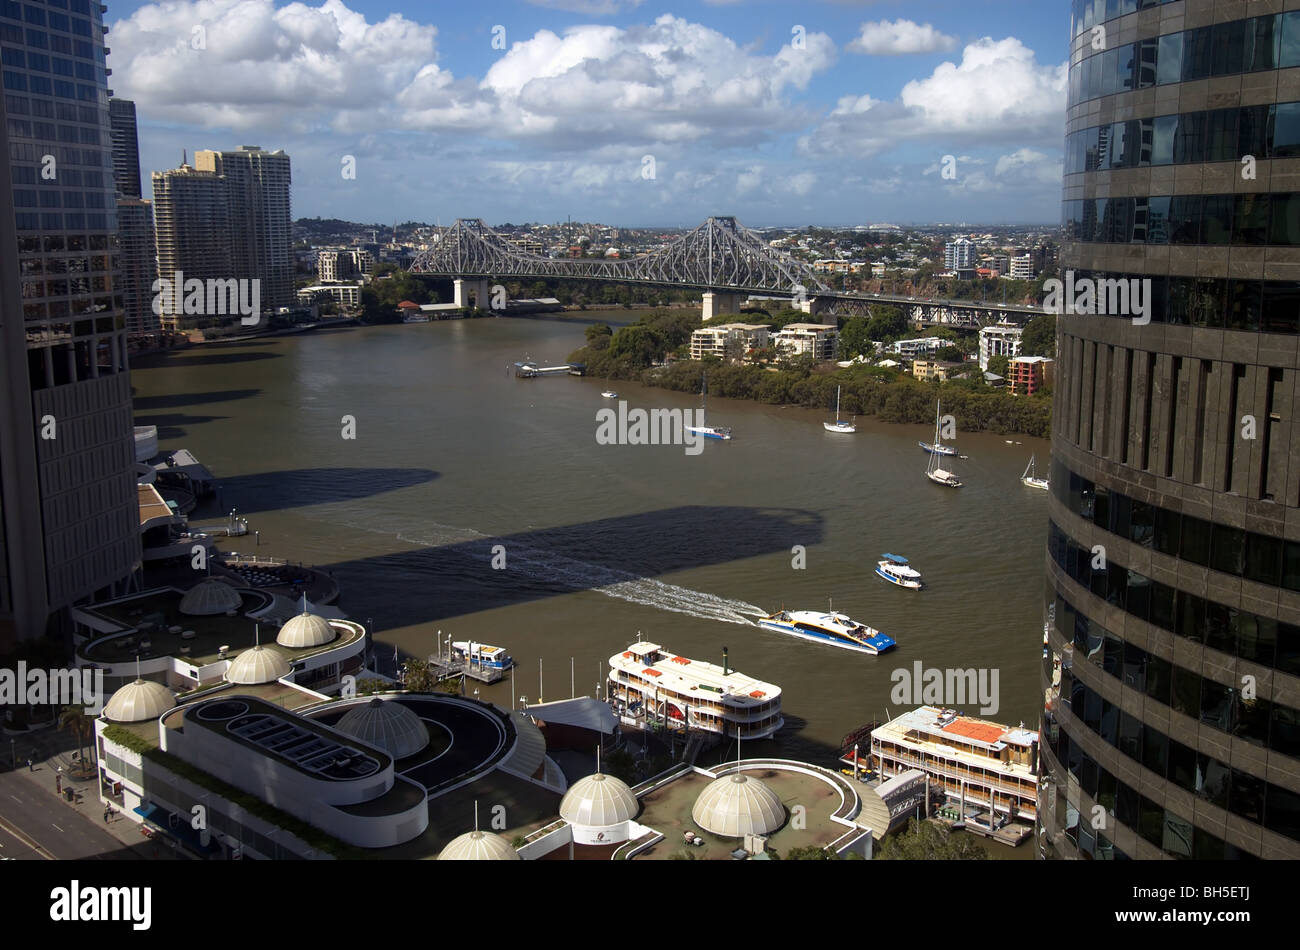 Boats on the Brisbane River near the Storey Bridge, city of Brisbane, Queensland, Australia. No PR - Stock Image